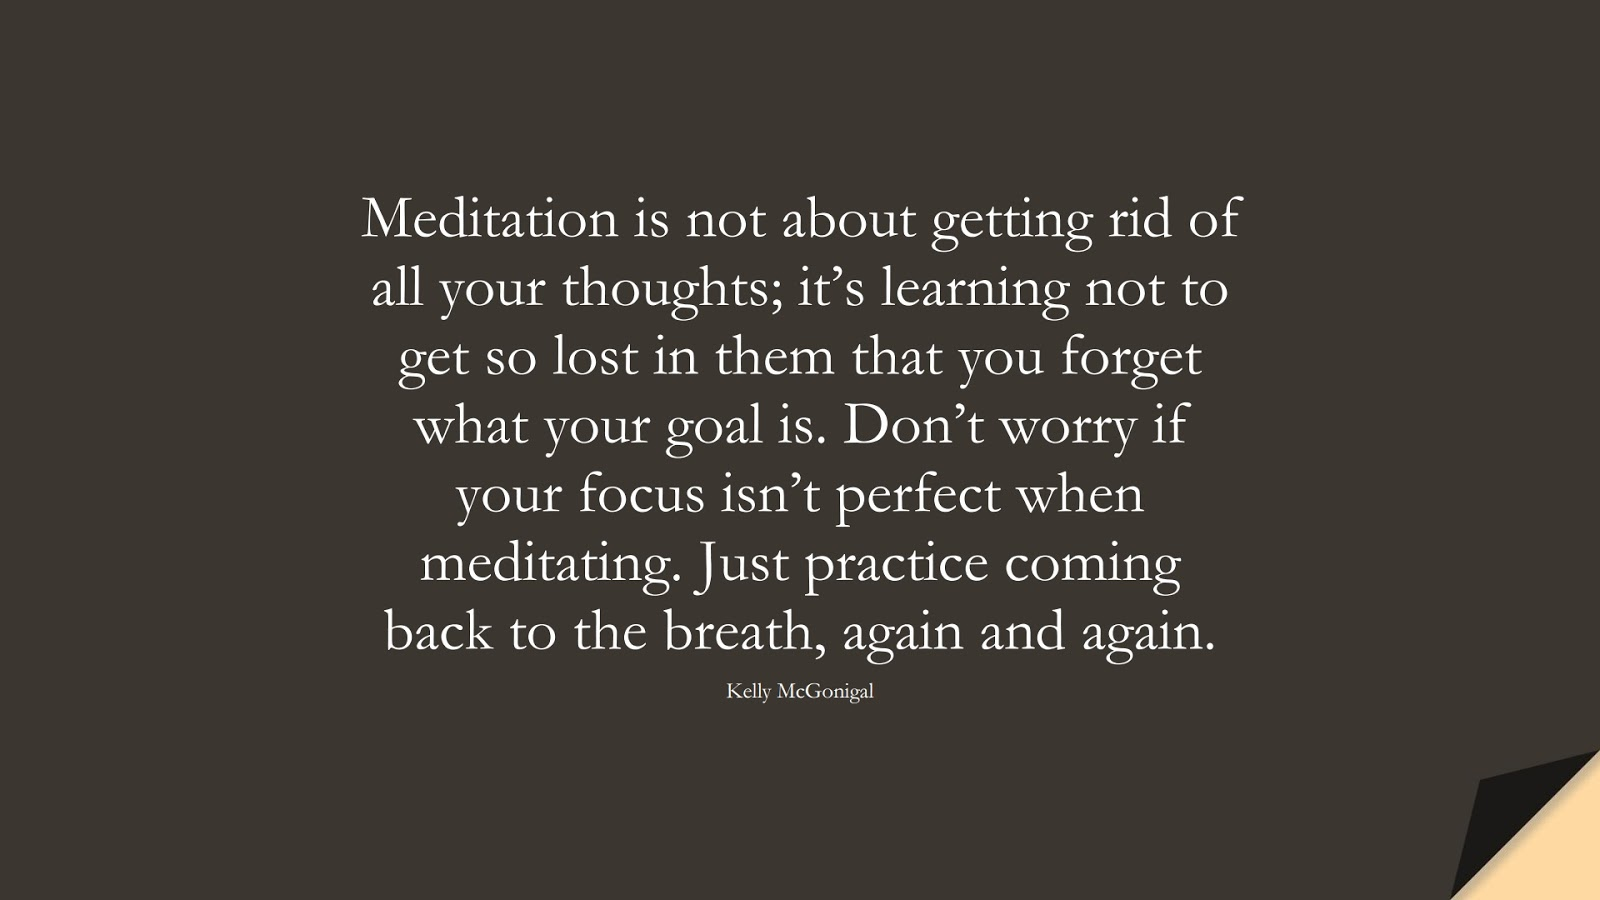 Meditation is not about getting rid of all your thoughts; it's learning not to get so lost in them that you forget what your goal is. Don't worry if your focus isn't perfect when meditating. Just practice coming back to the breath, again and again. (Kelly McGonigal);  #StressQuotes